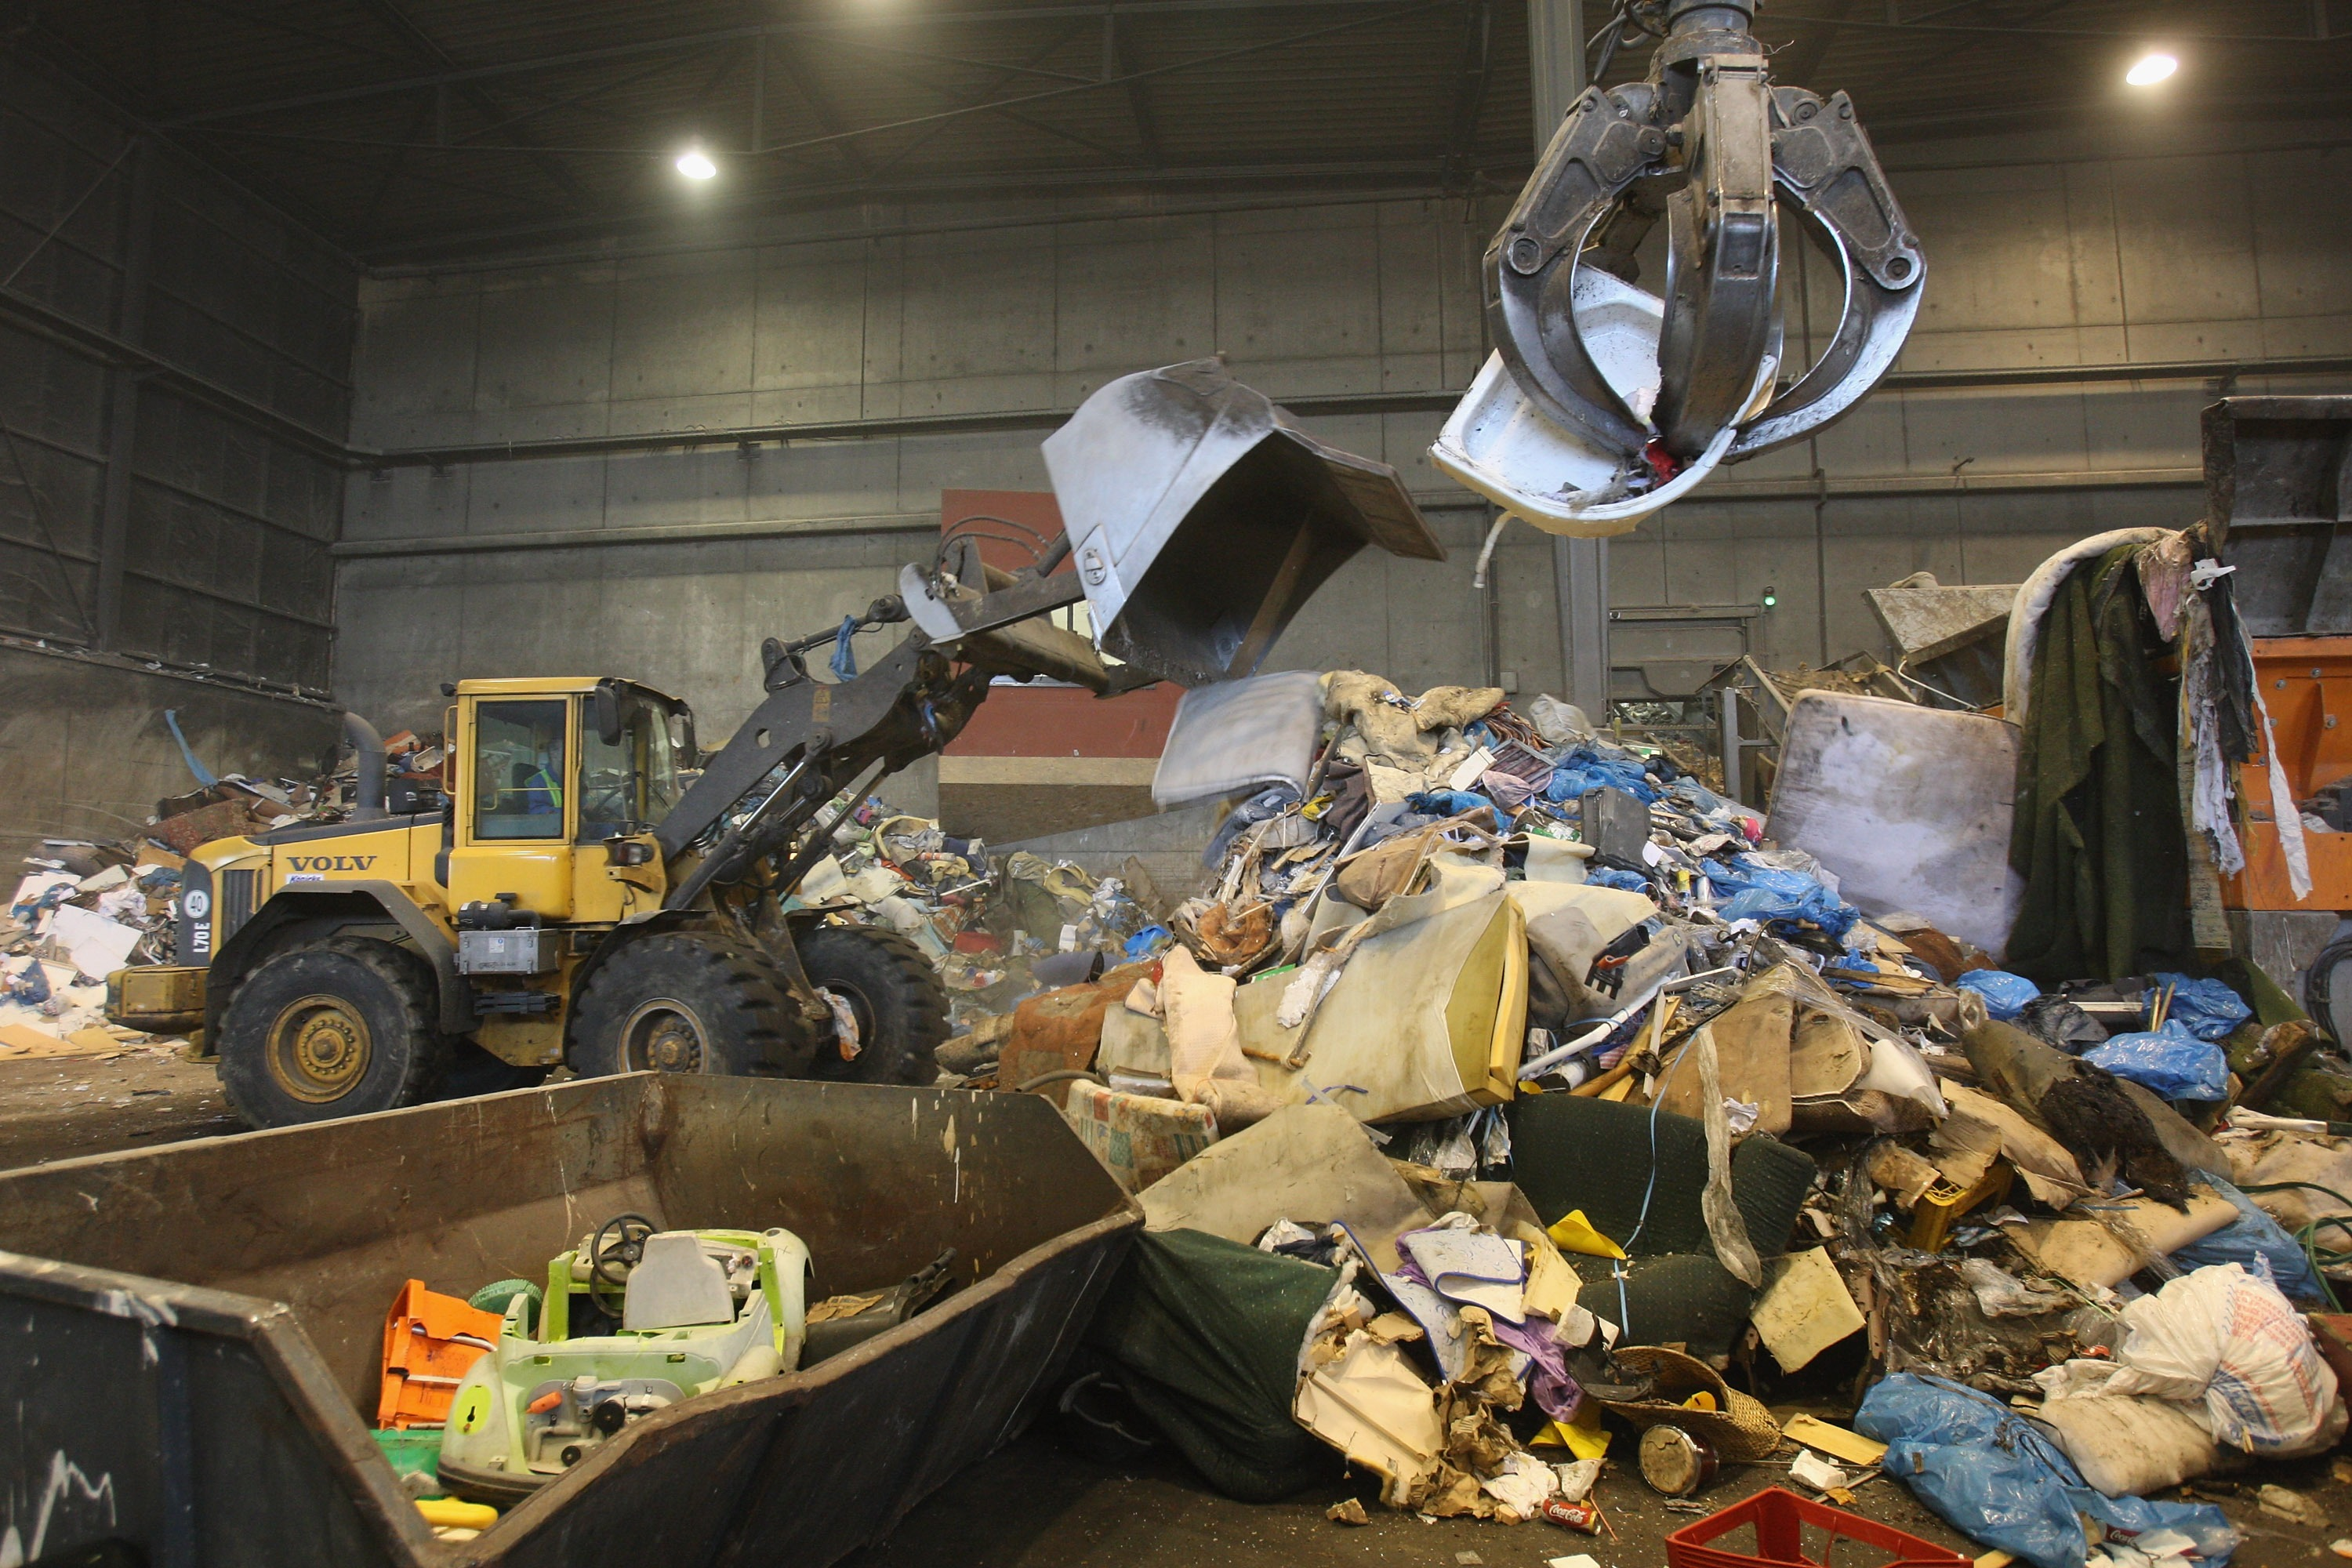 Crews sort garbage at a processing center in Nuemuenster, Germany for consumption in the city's converted power plant.